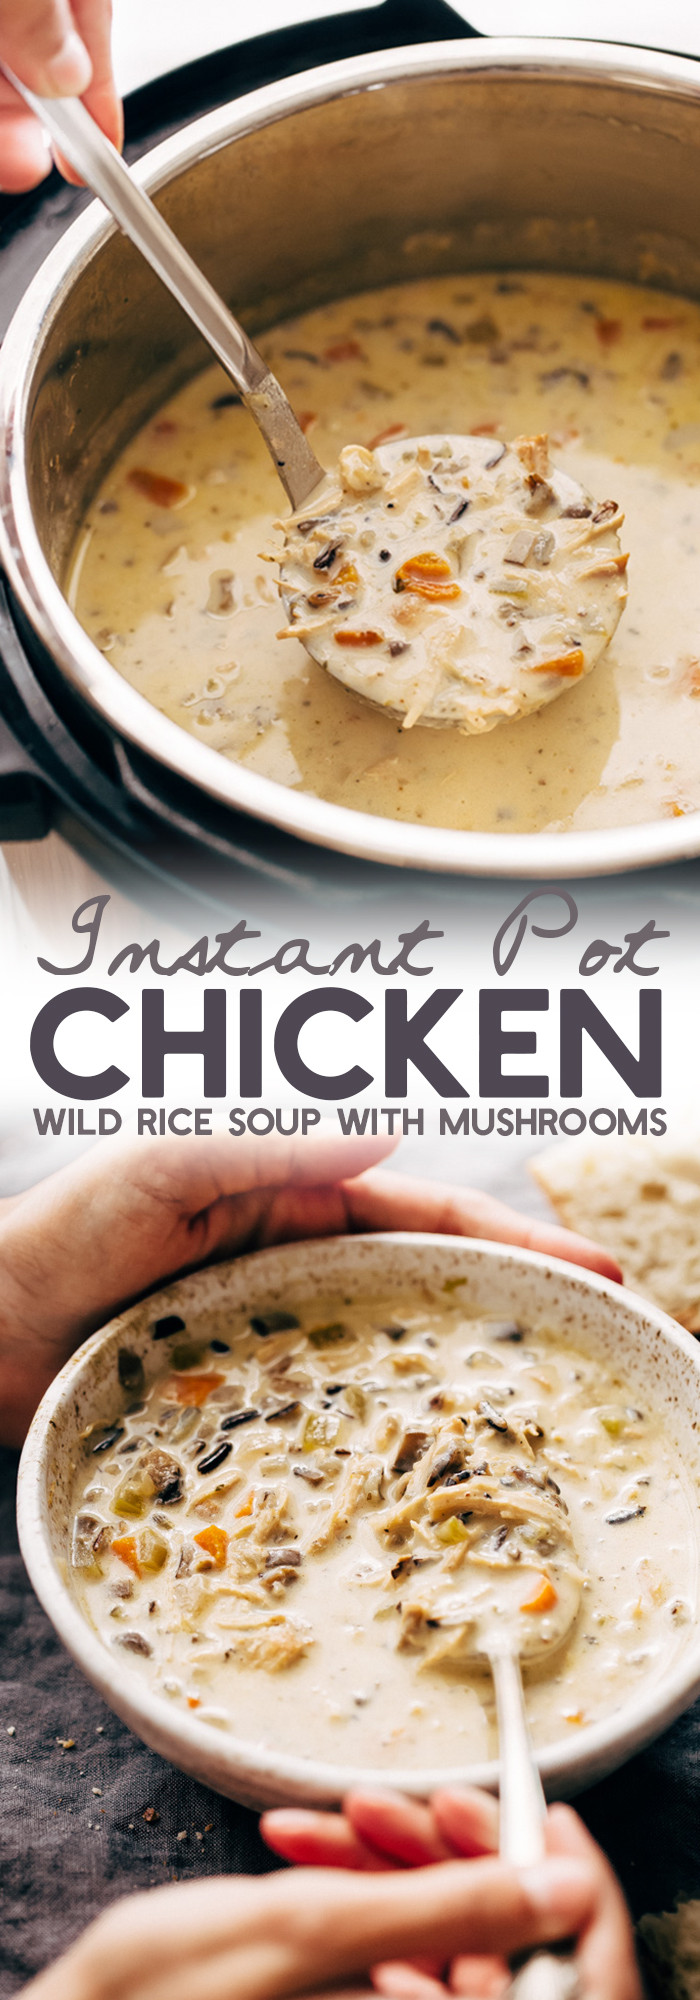 Chicken Rice Soup Instant Pot  Instant Pot Chicken Wild Rice Soup Recipe